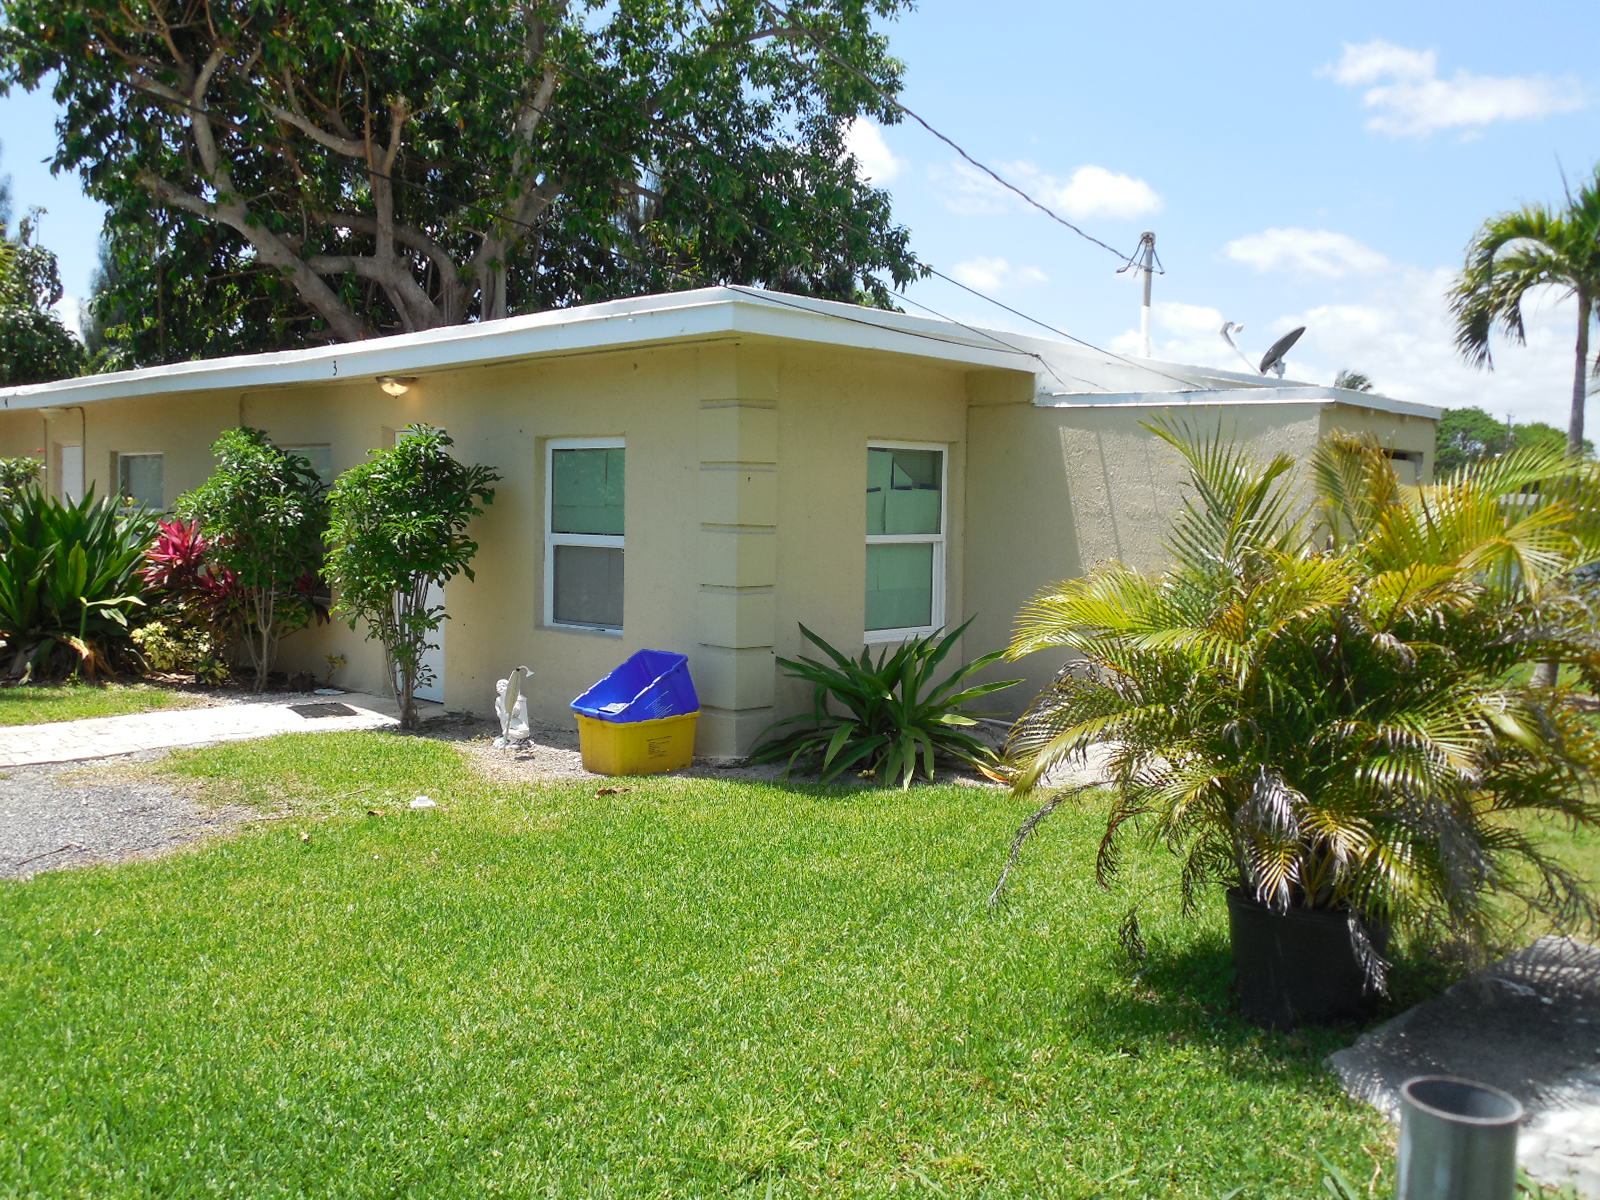 4 Plex Quot Multi Family Homes For Sale West Palm Beach Fl